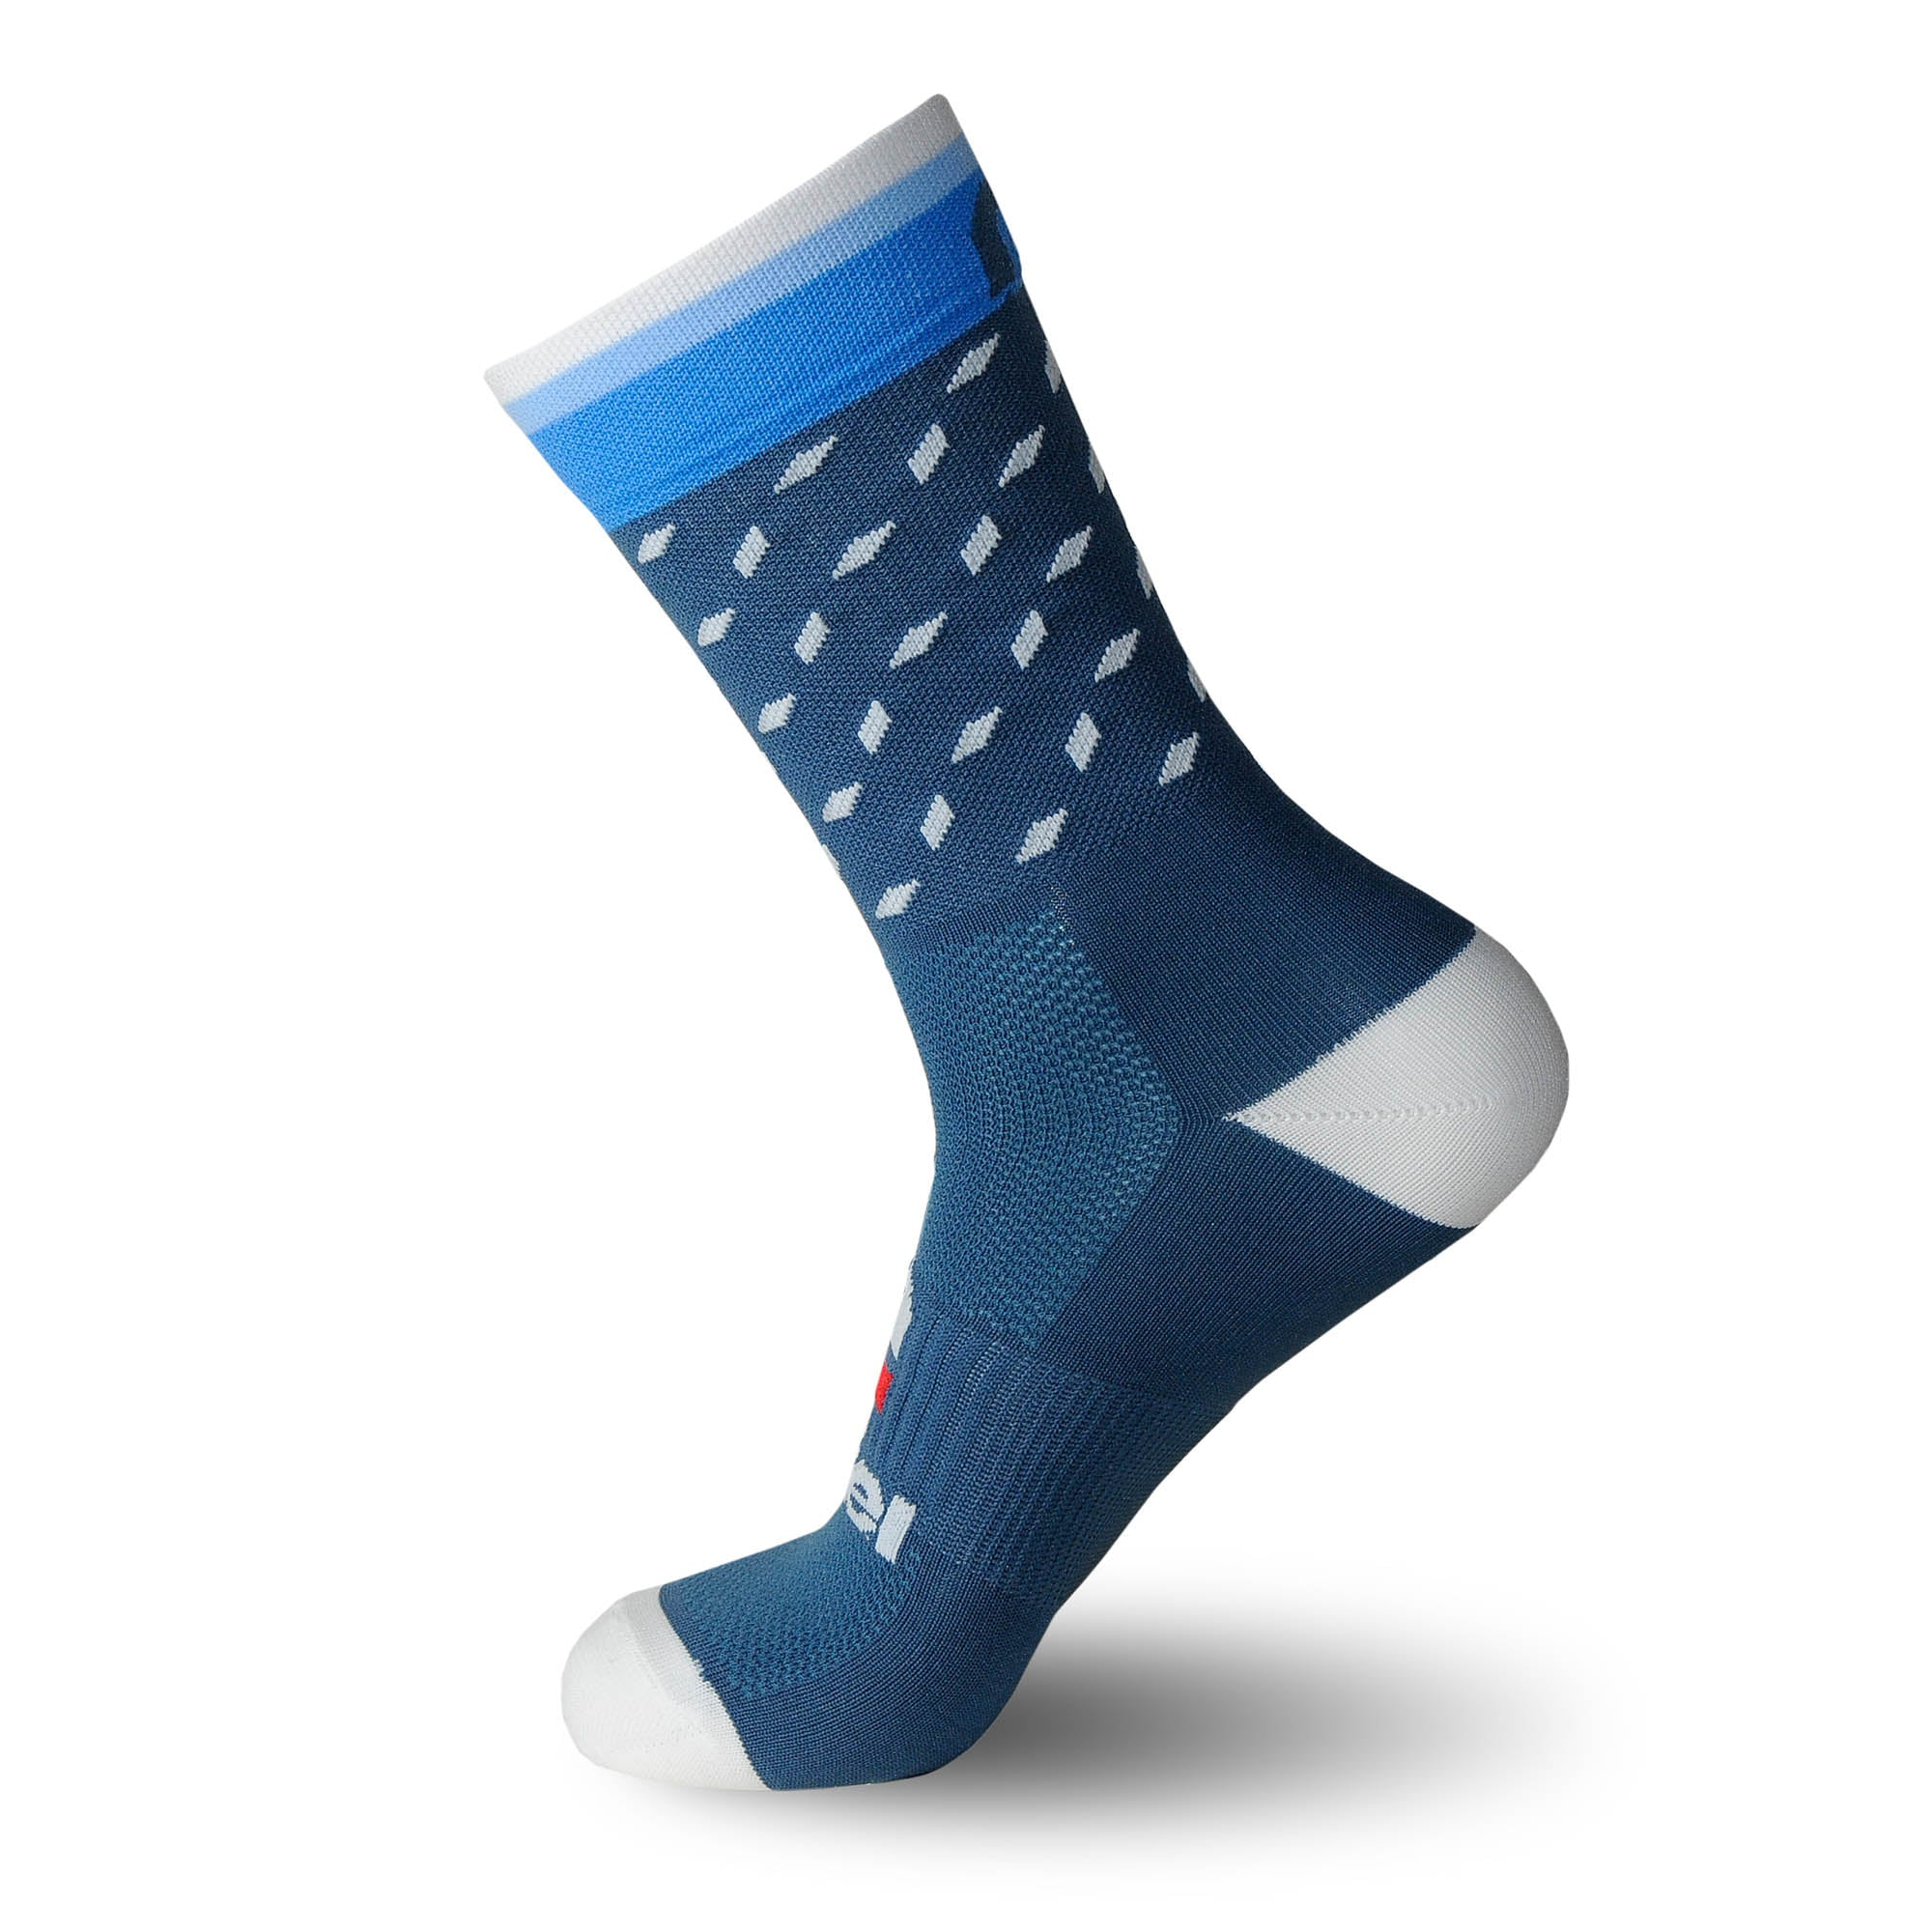 calcetines_divertidos_originales_verano Nortei_Dotty_Dots_Azul_1